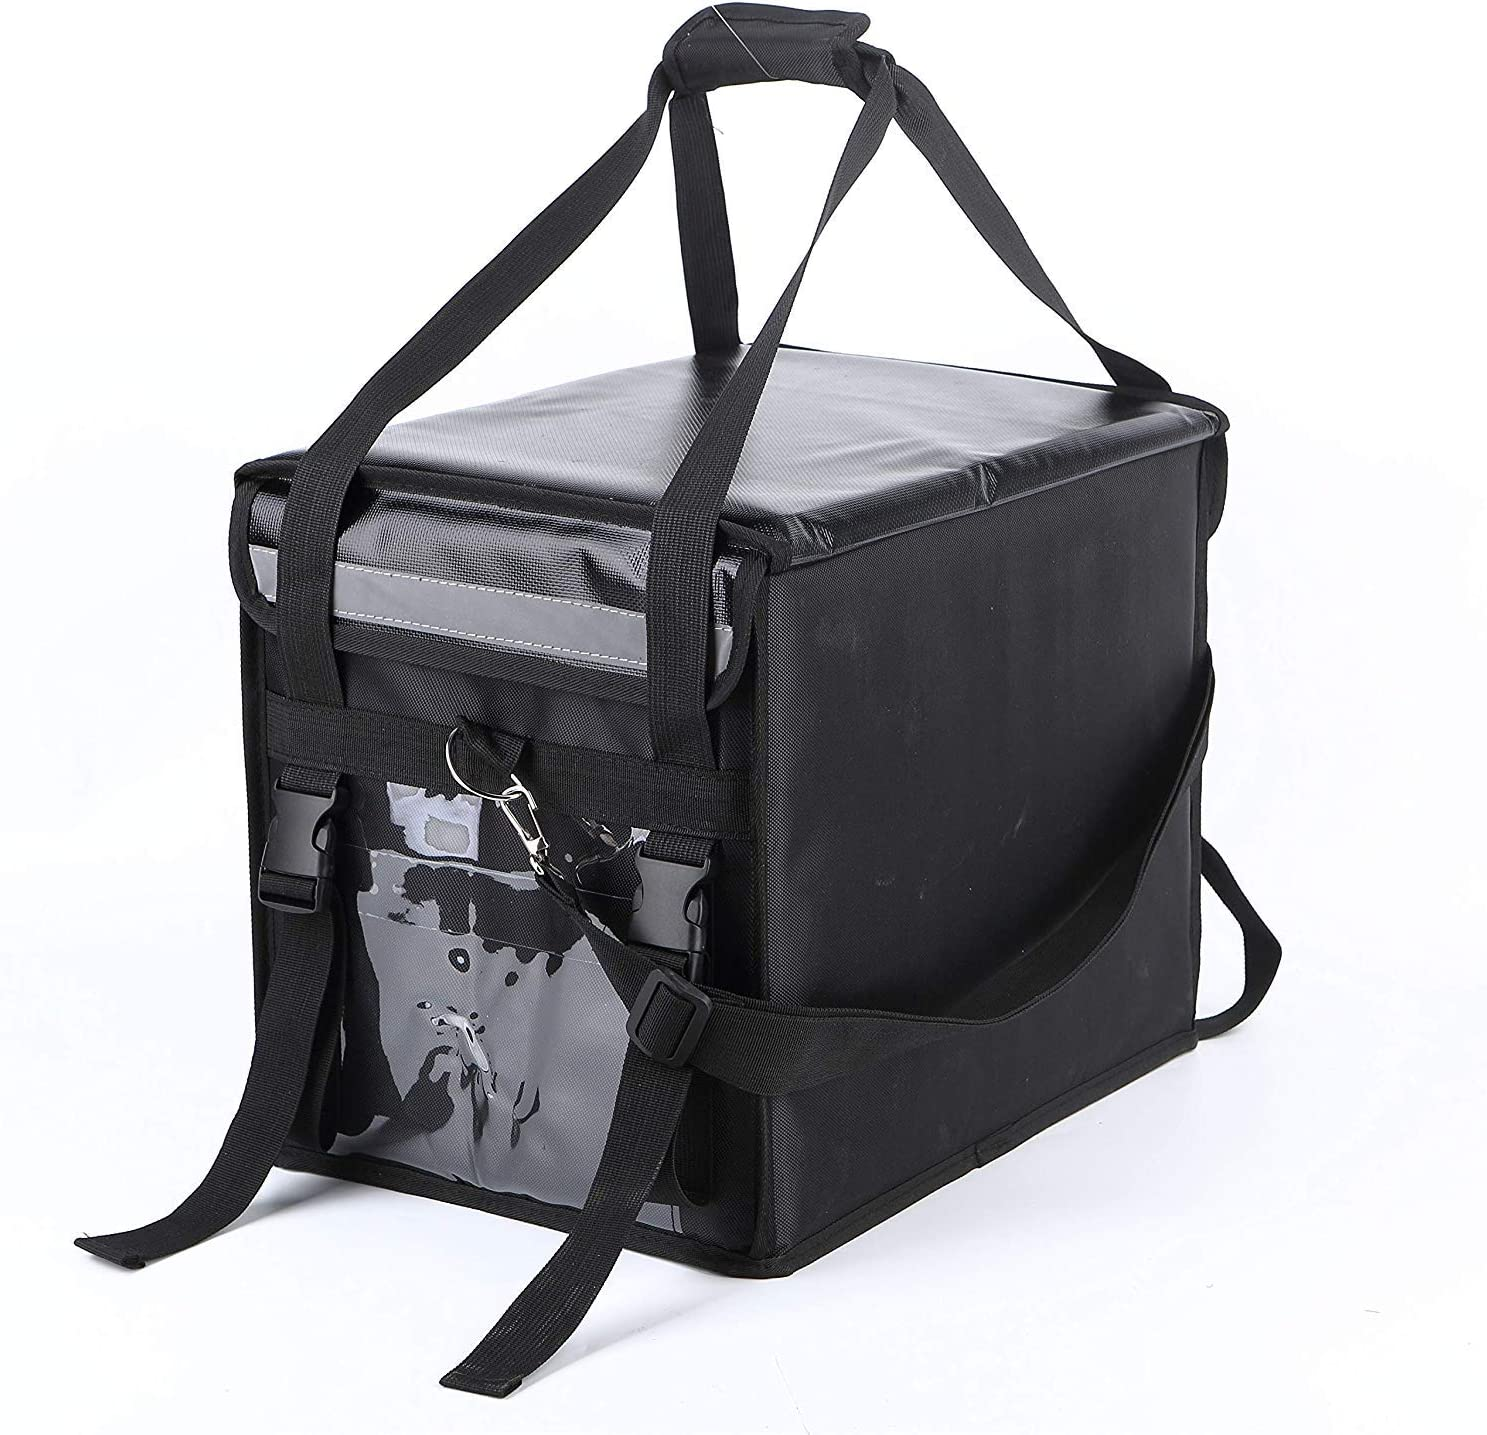 48L Food Delivery Bag, Waterproof,Durable, Standable, Hot and Cool Food,Pizza,Drink,Cooler Bag,Insulated Bag for Catering | Uber Eats Bag